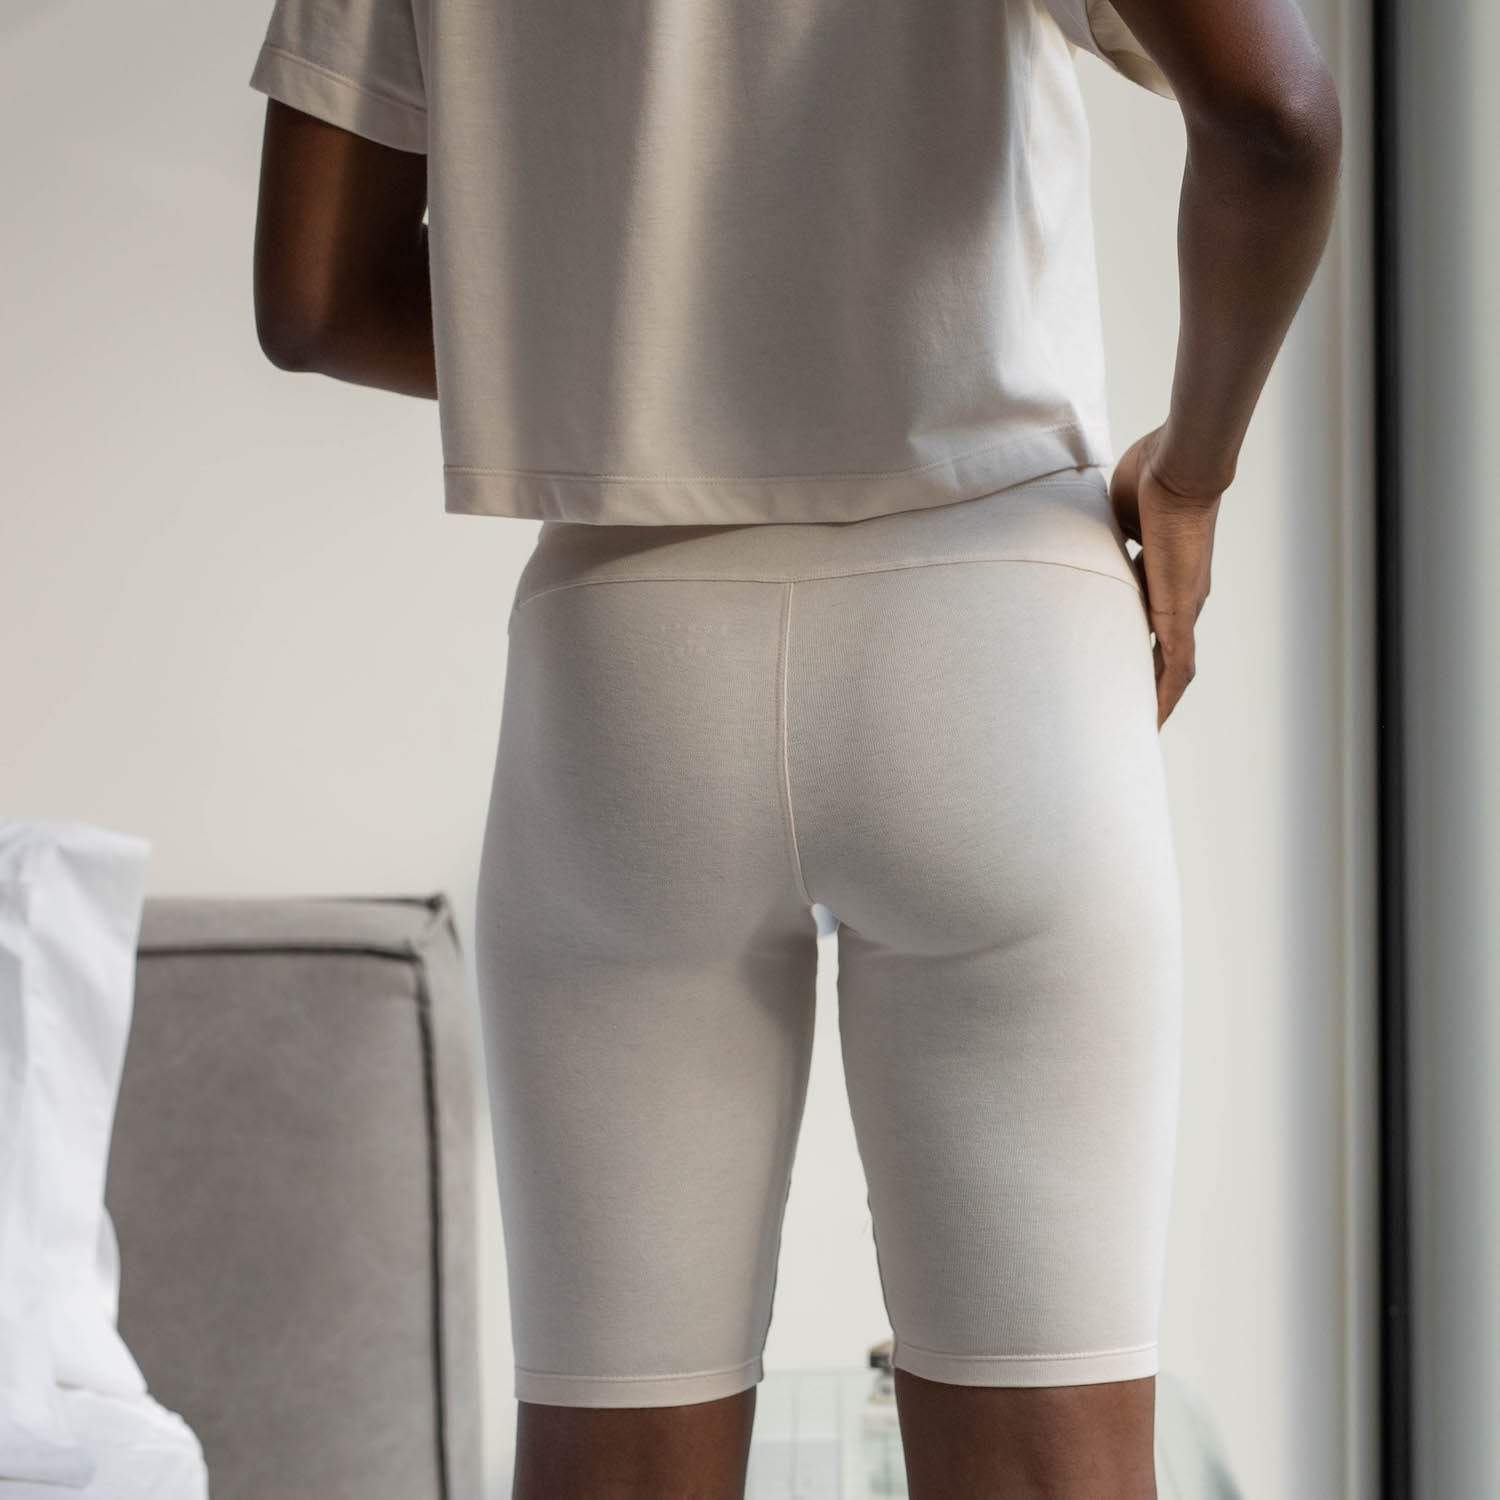 Lunya Sleepwear Restore Bike Short - #Latte